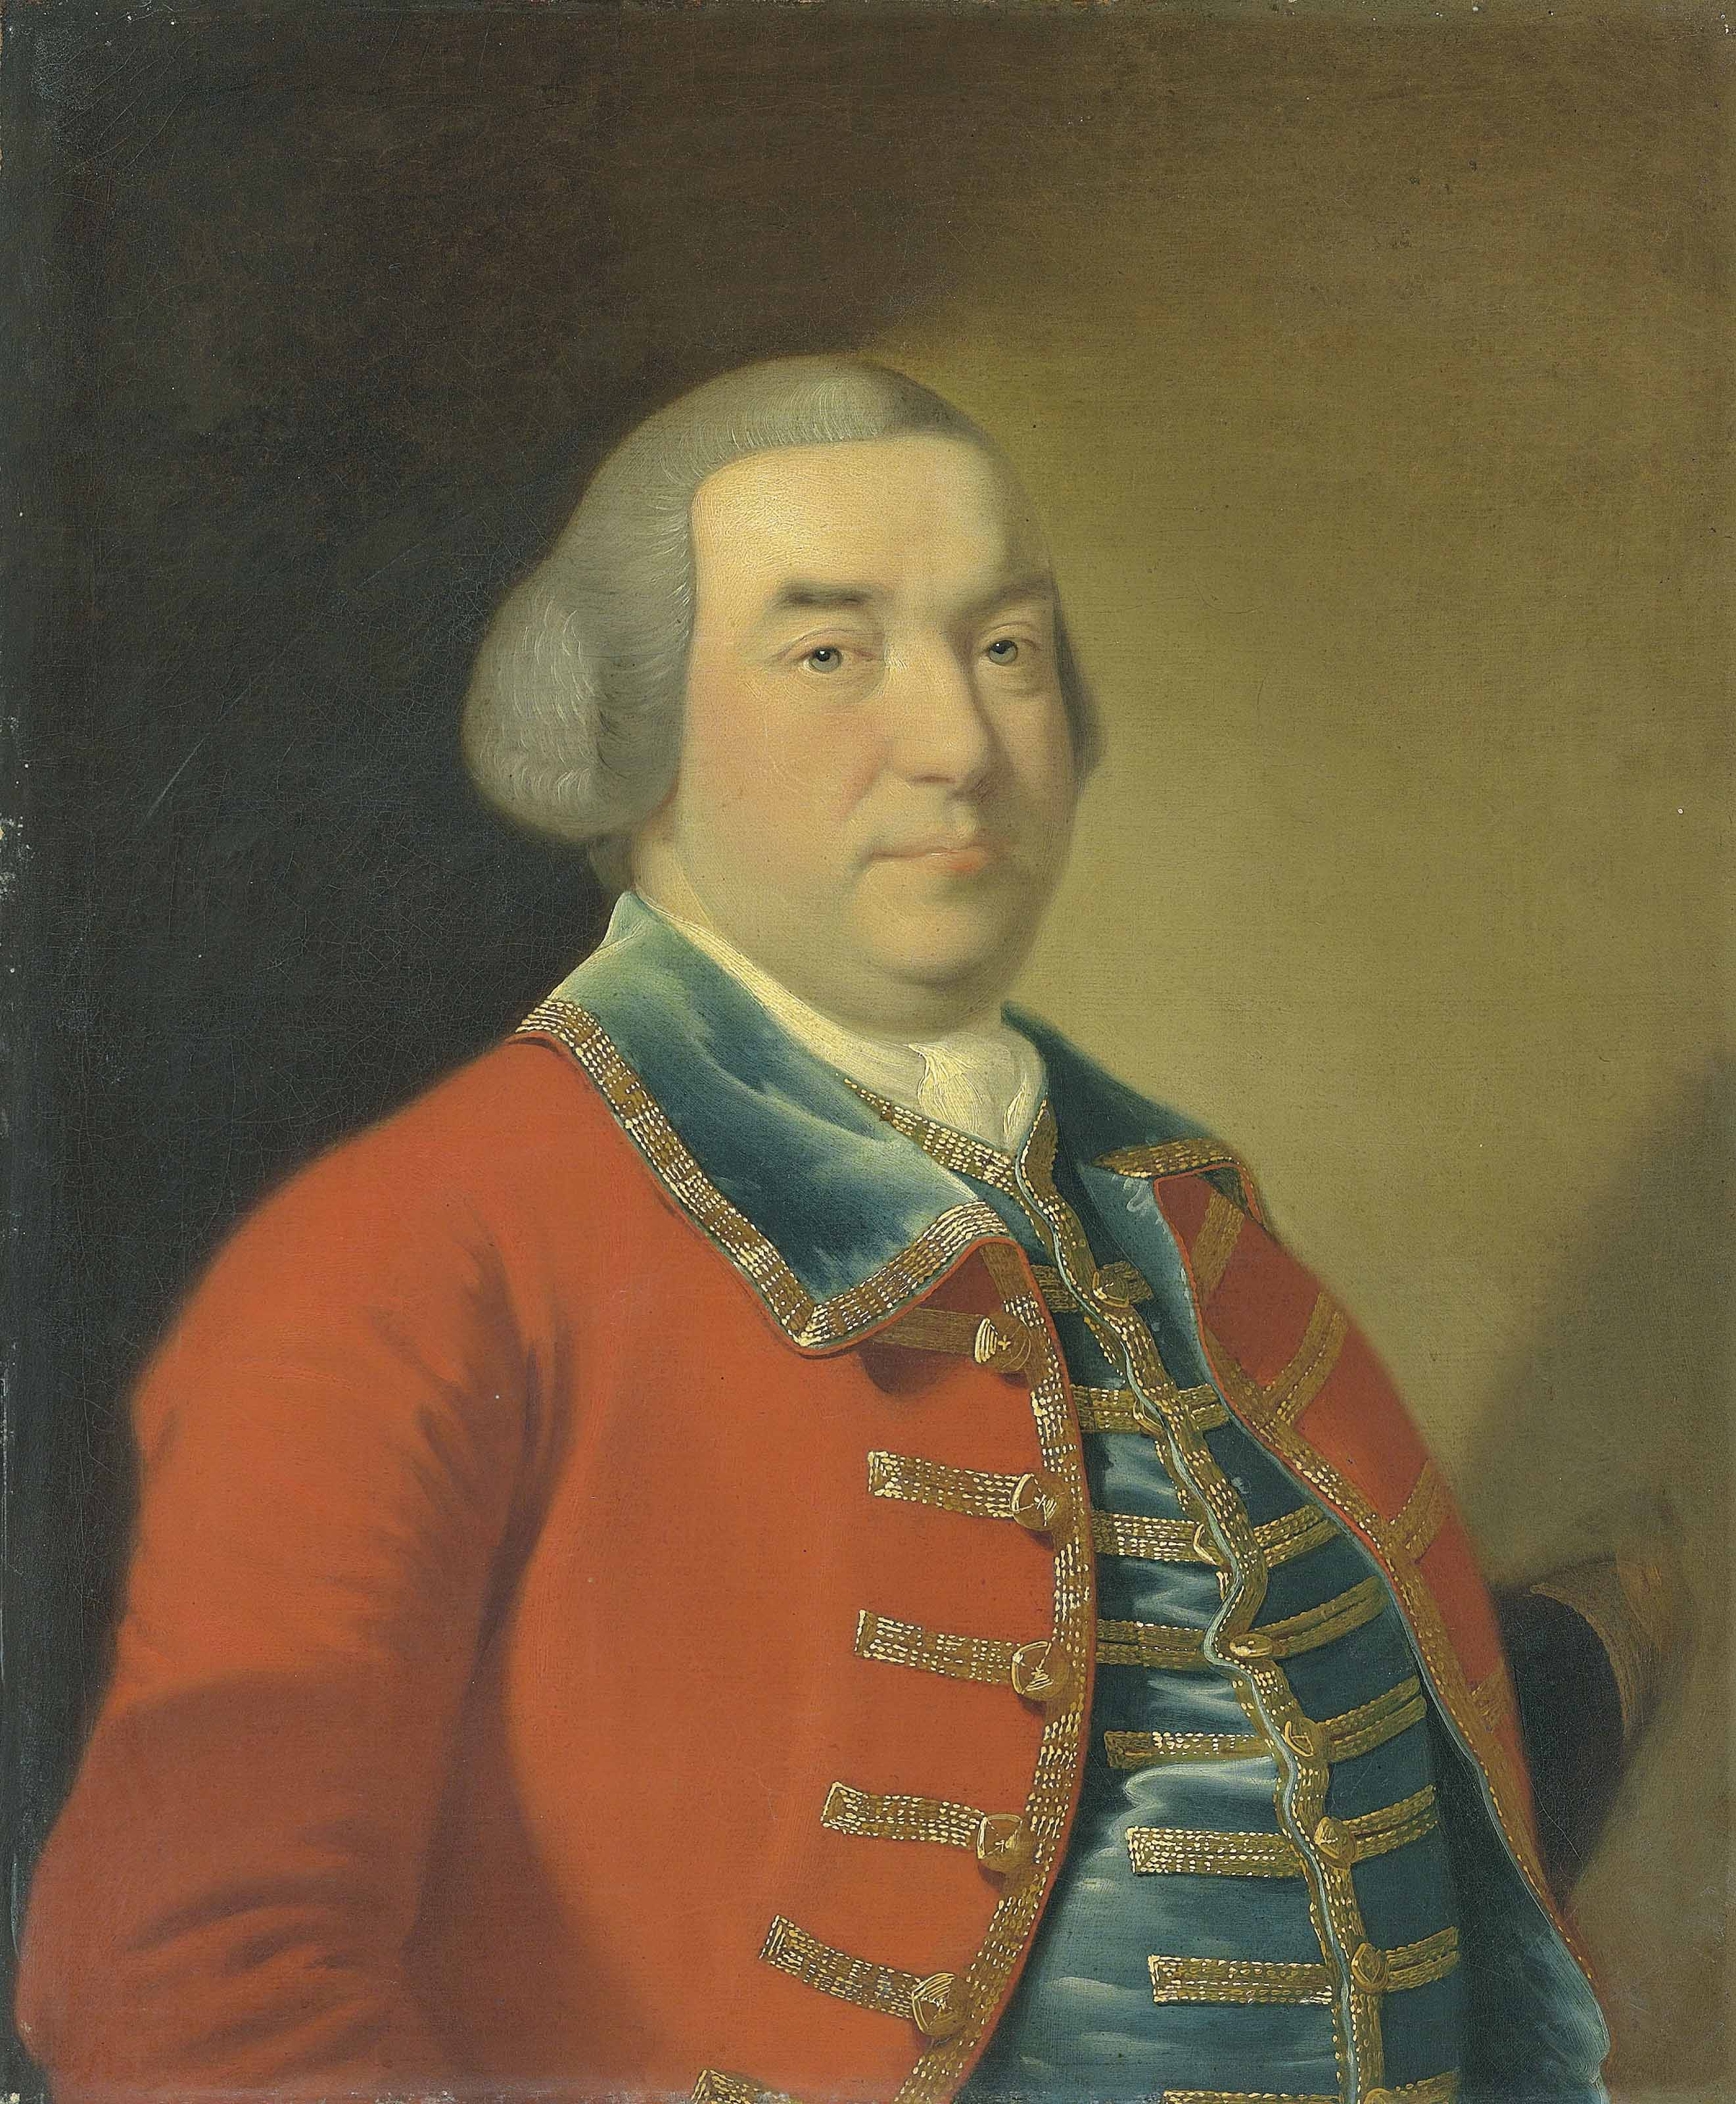 Portrait of Captain William Kirke (1715-1773), bust-length, in a red military coat and blue waistcoat with gold embroidery